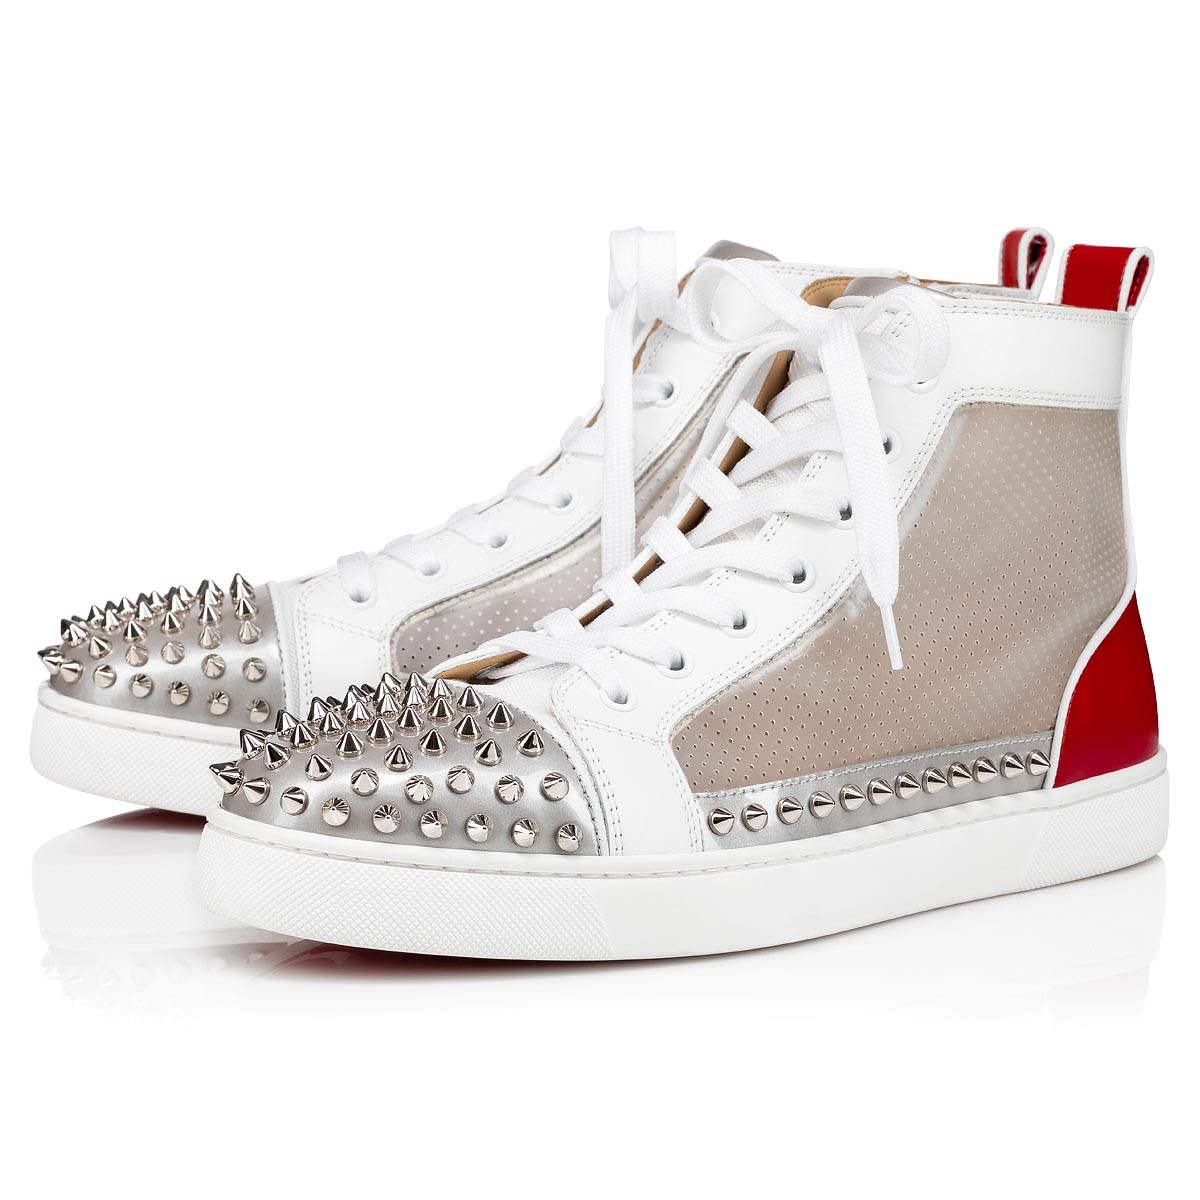 Shoes - Sosoxy Spikes Flat - Christian Louboutin